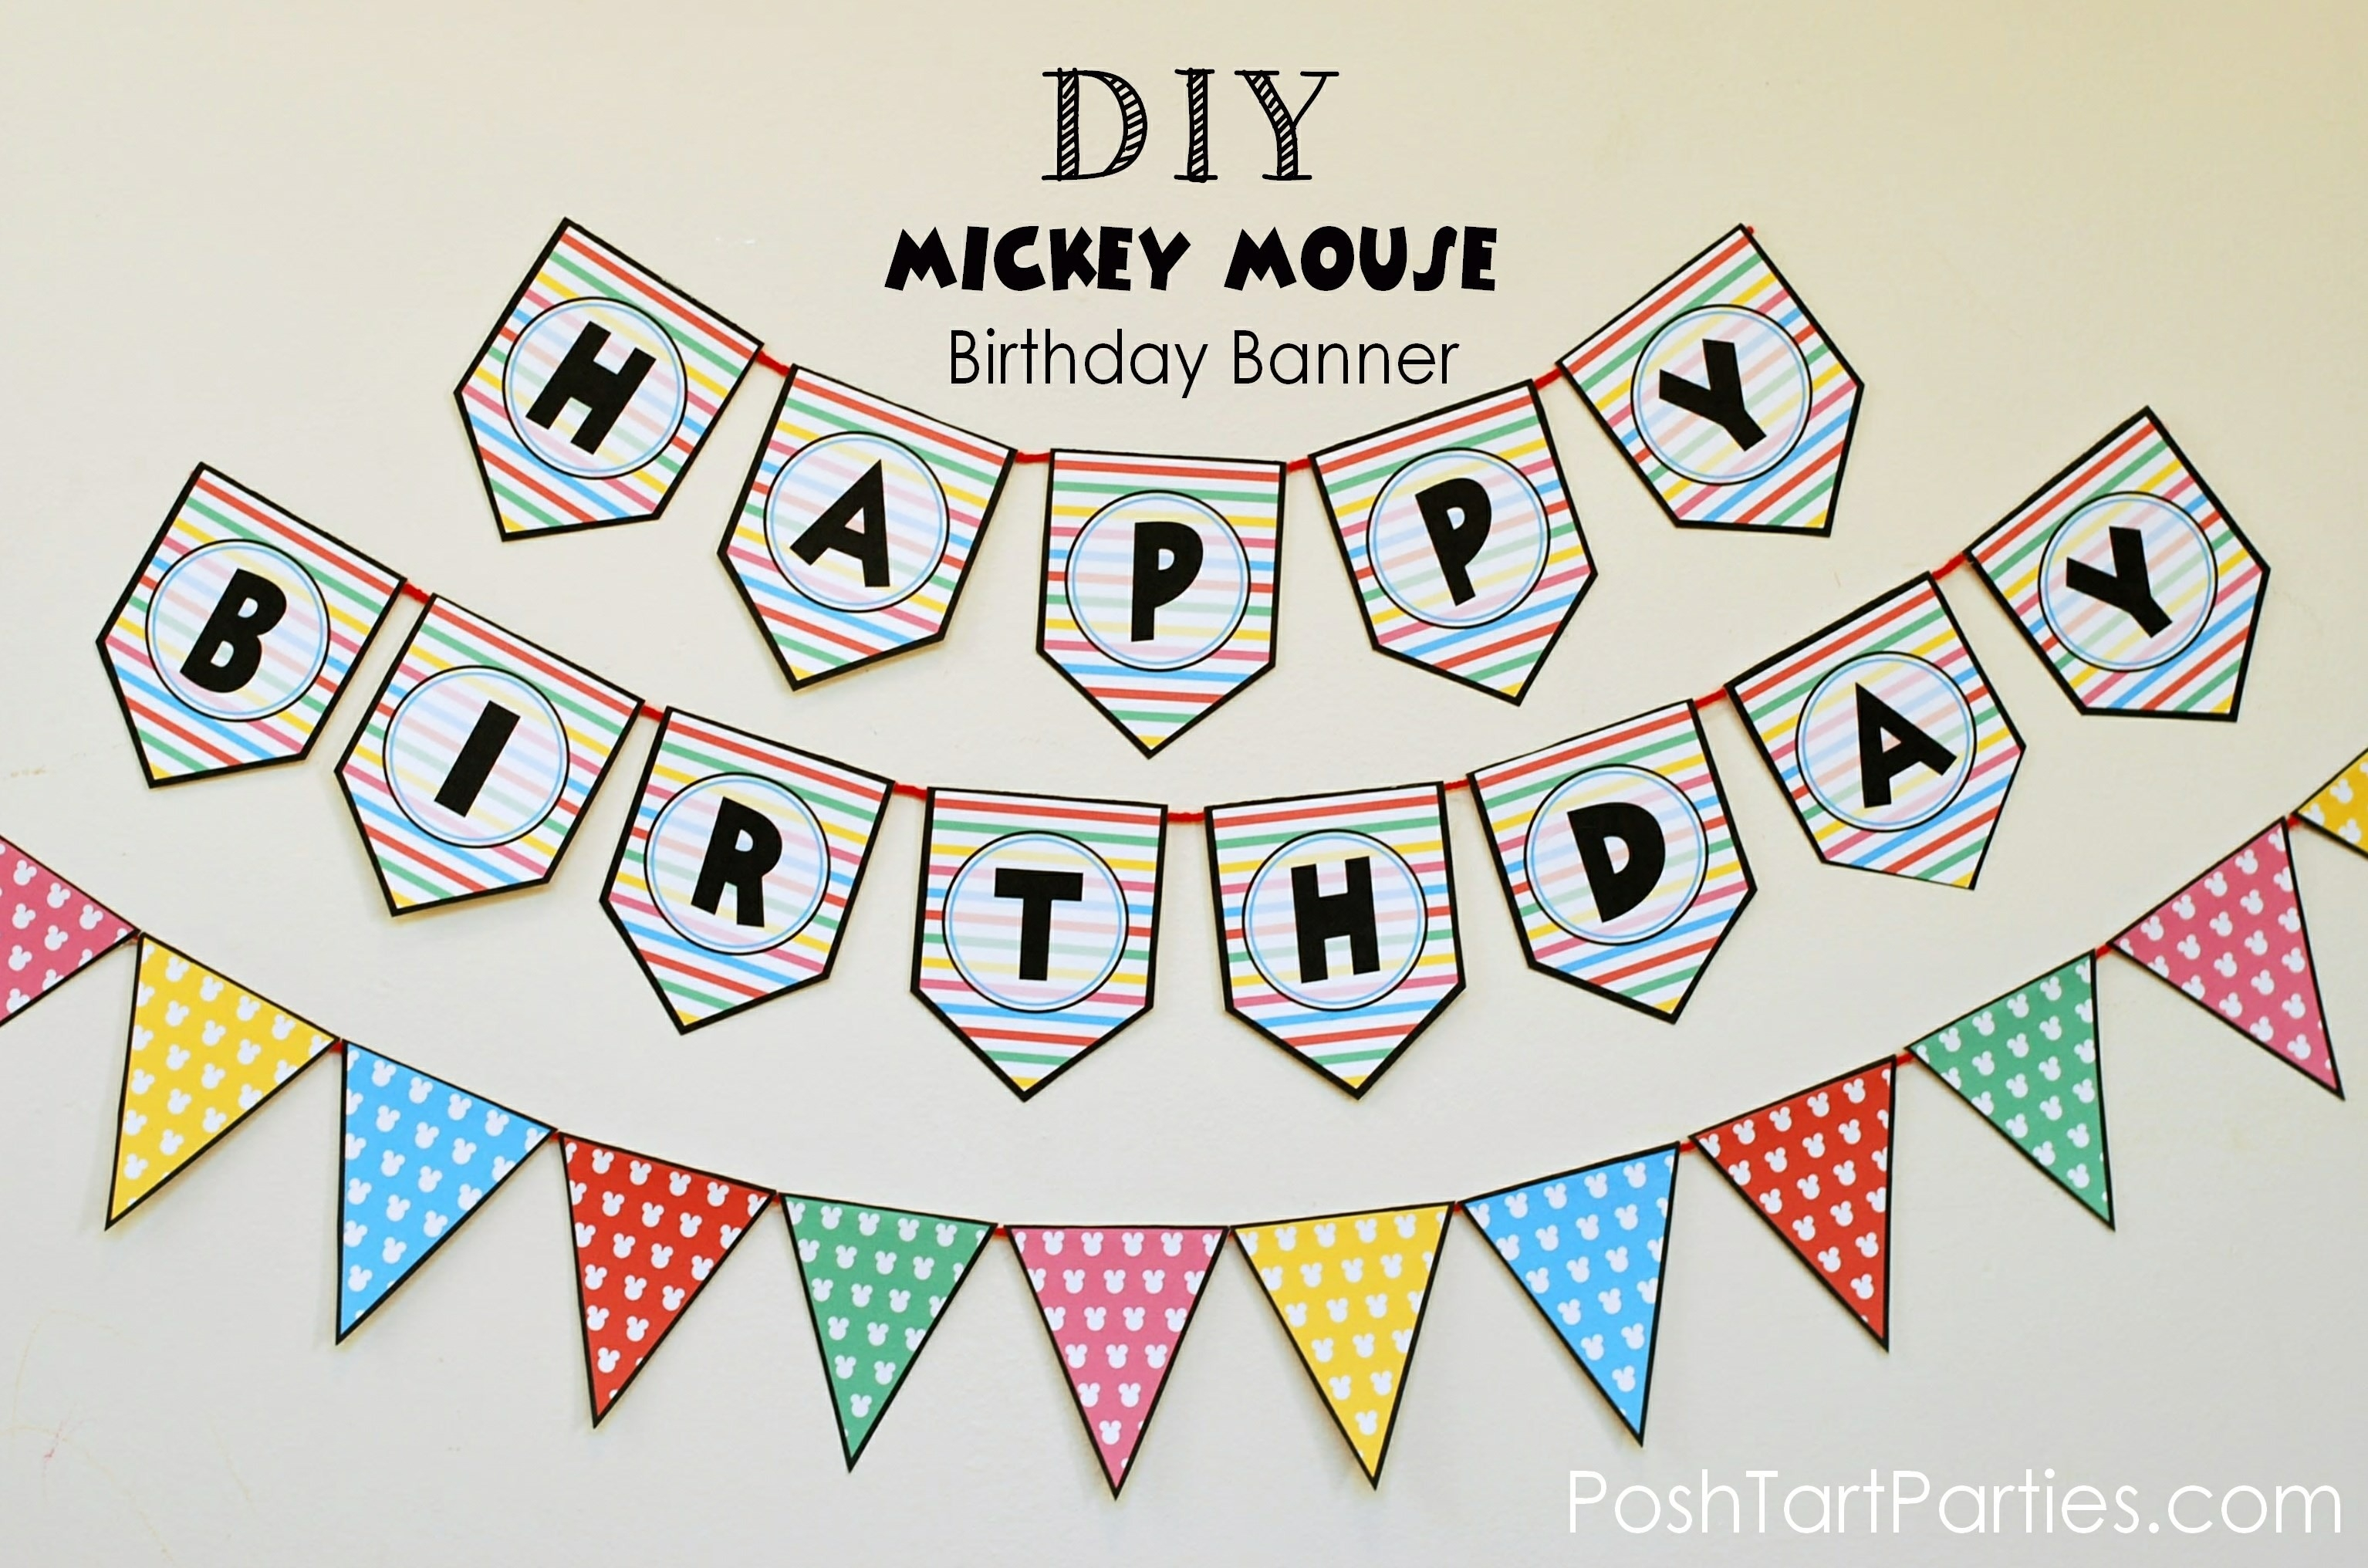 free birthday banners personalized with photo ; a-mickey-and-minnie-mouse-party-free-printable-happy-birthday-regarding-free-printable-birthday-banners-personalized